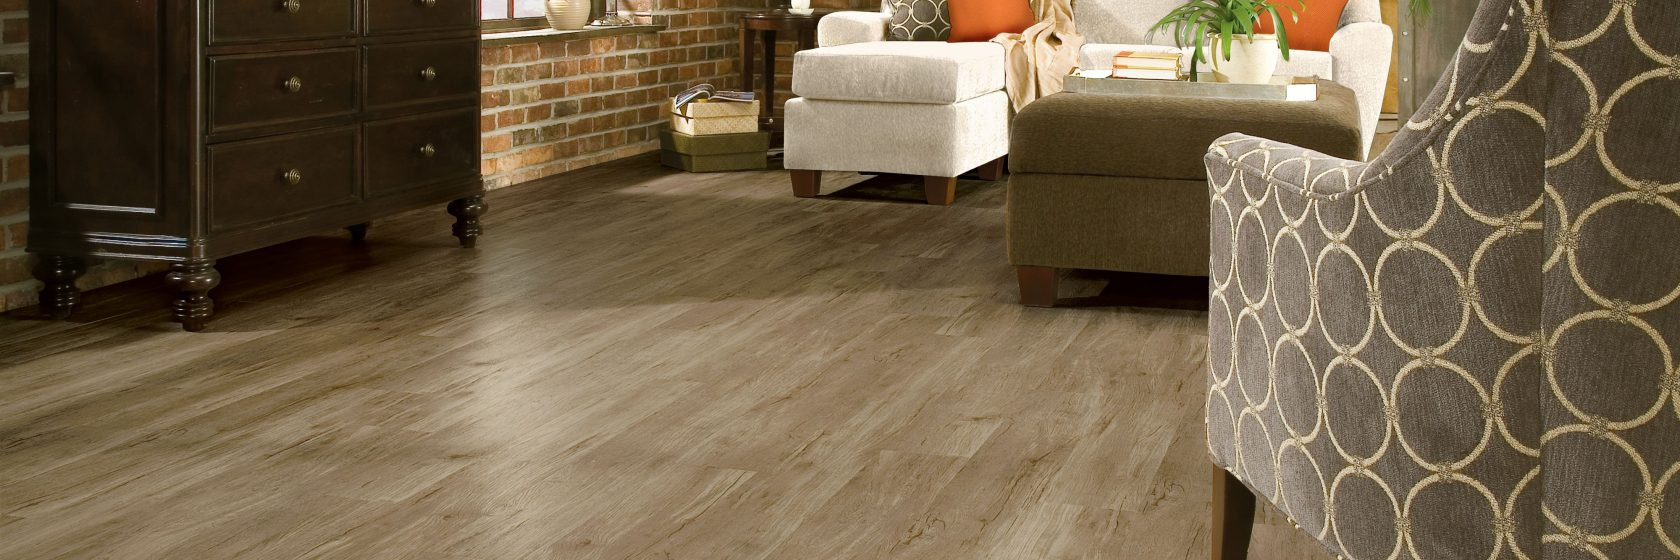 Timber Bay Luxury Vinyl Tile Provincial Brown A6860